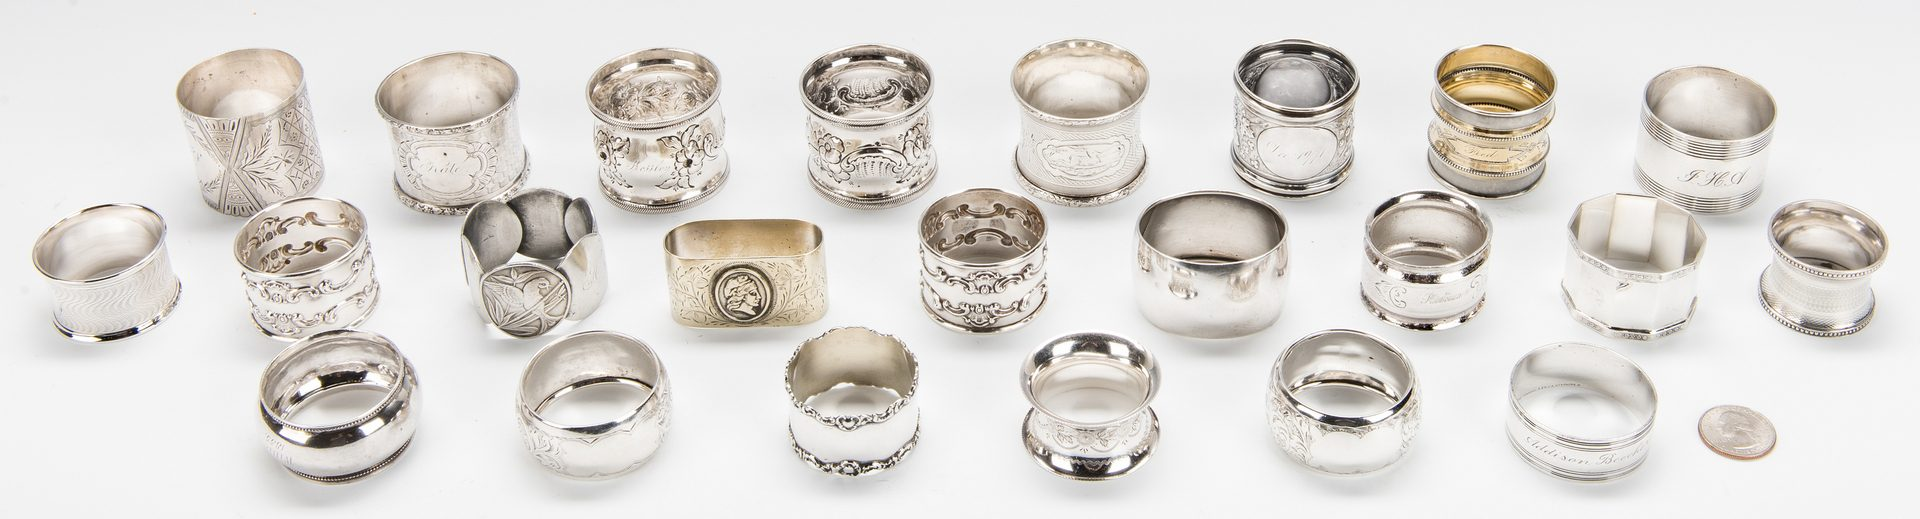 Lot 217: Collection of 23 Silver Napkin Rings